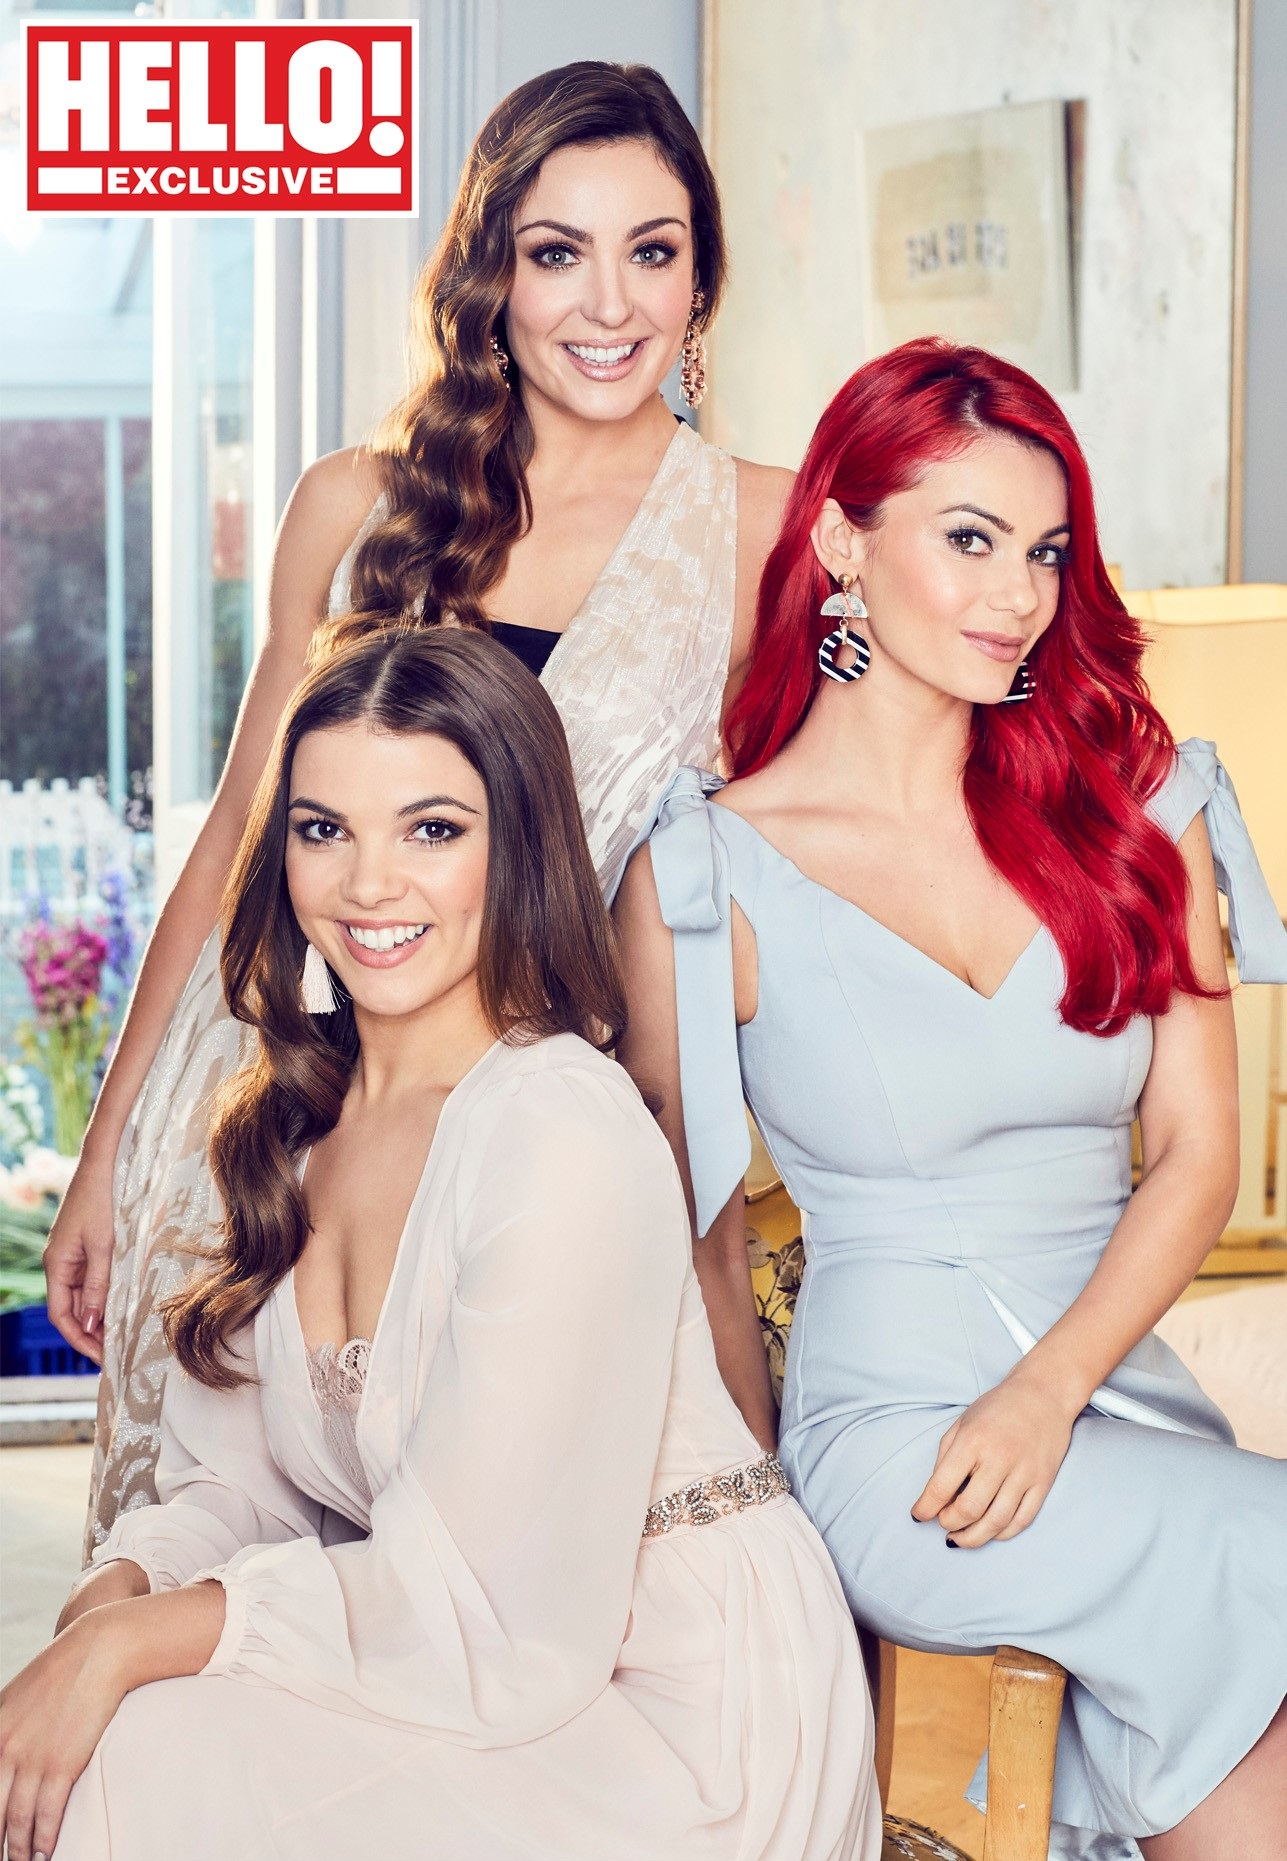 Amy Dowden, Dianne Buswell and Chloe Hewitt